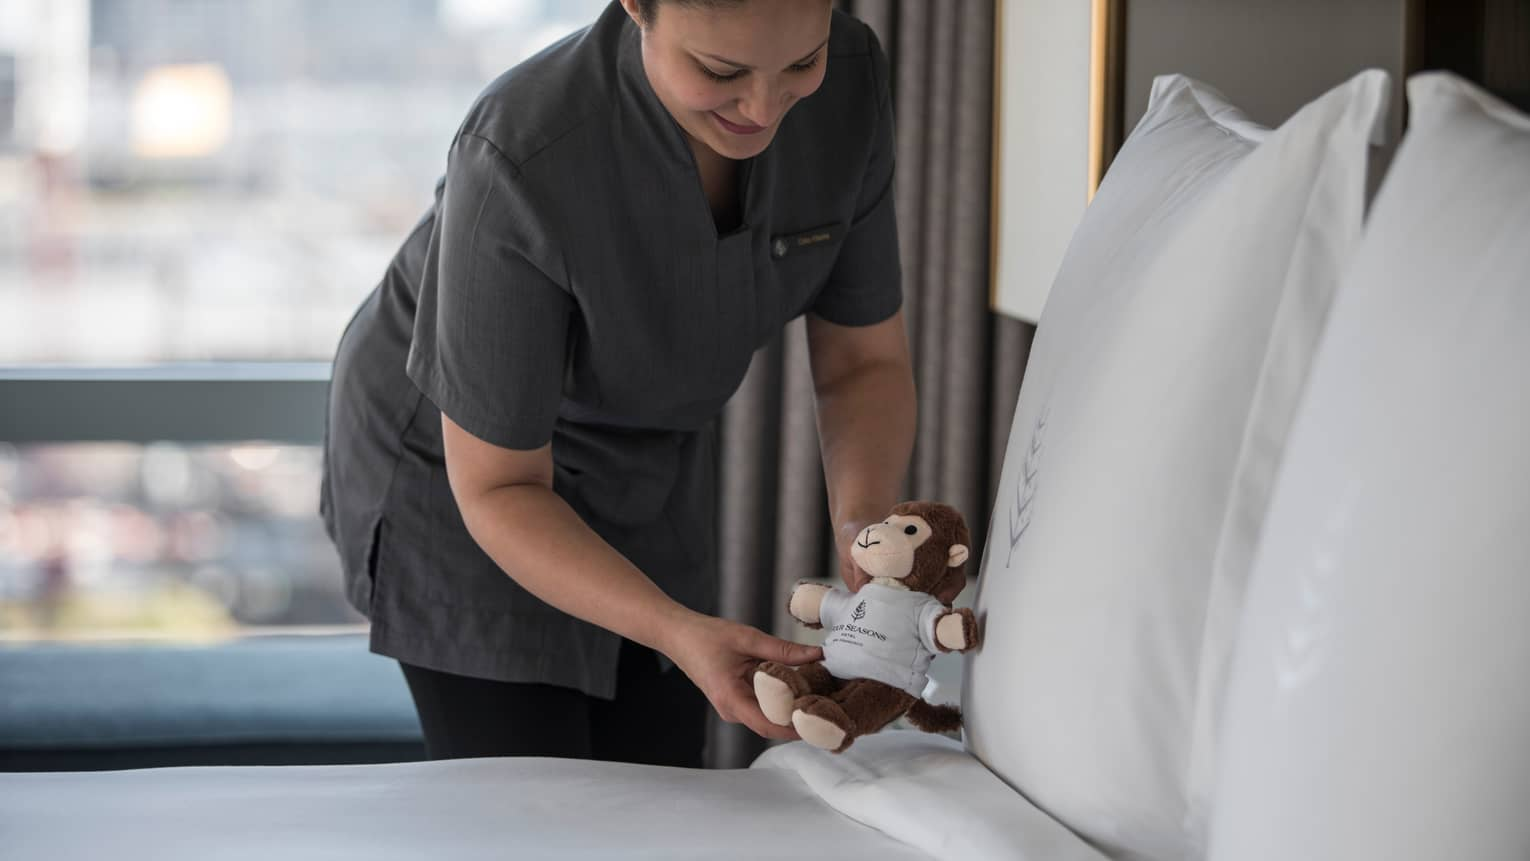 Hotel staff sets small stuffed monkey toy down on made hotel bed